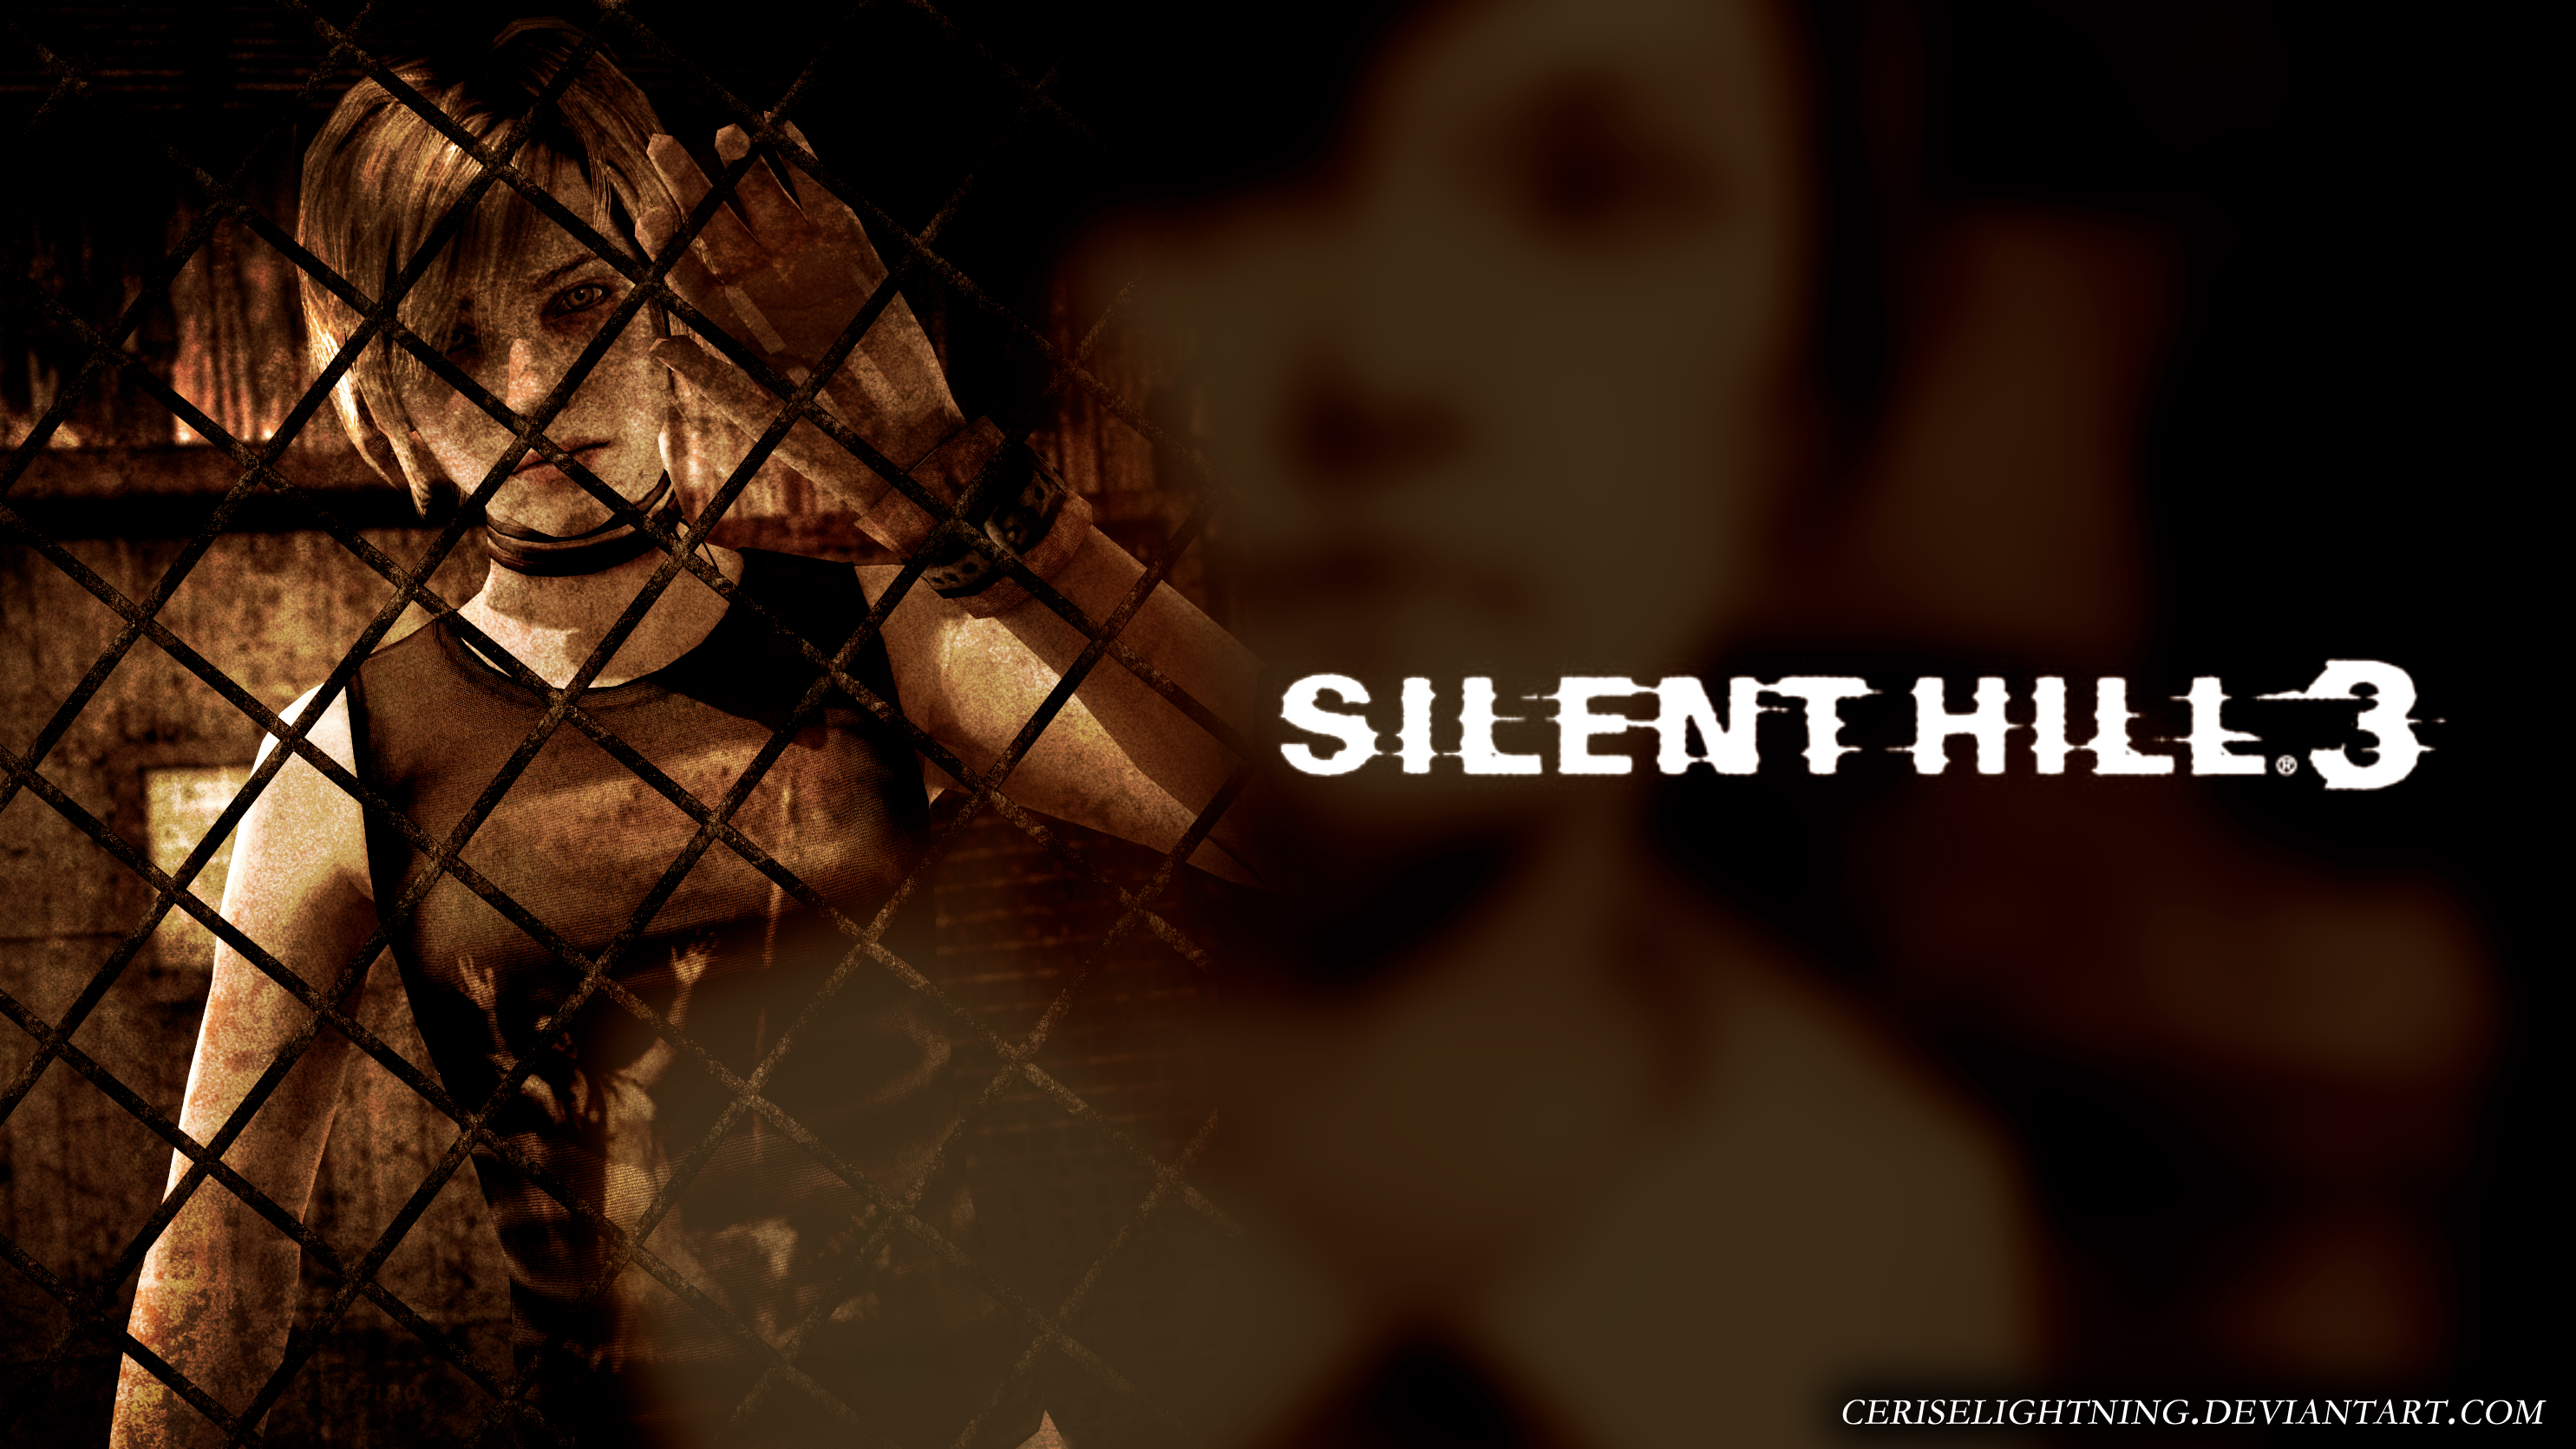 Silent Hill 3 Wallpaper by ceriselightning 2970x1671